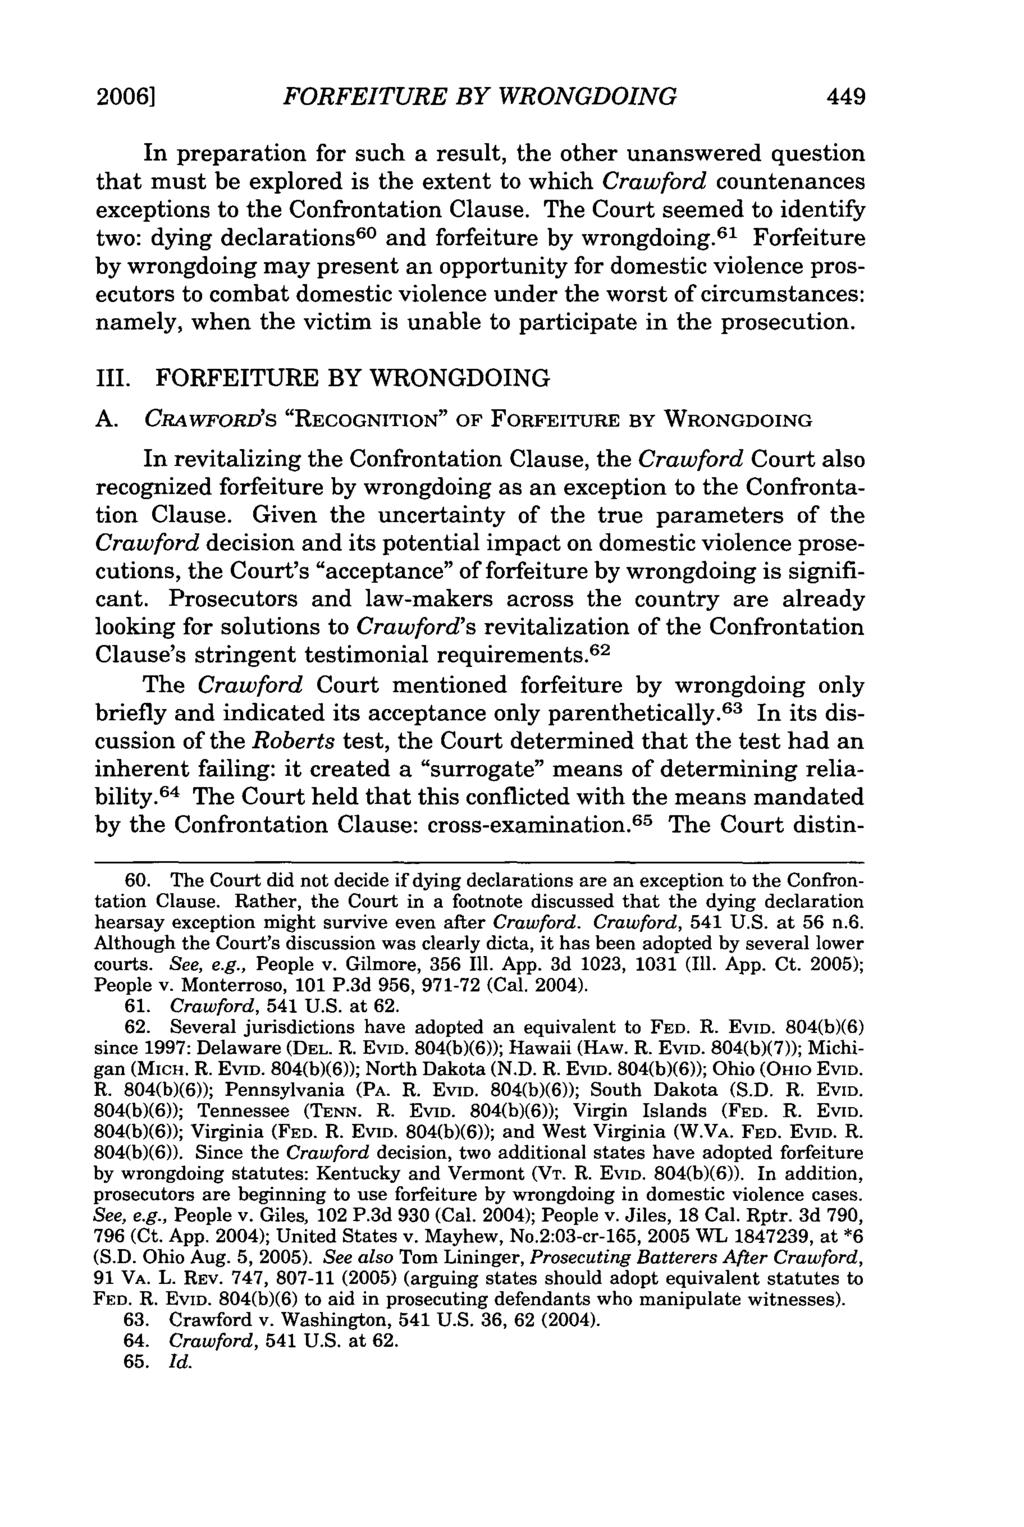 2006] FORFEITURE BY WRONGDOING In preparation for such a result, the other unanswered question that must be explored is the extent to which Crawford countenances exceptions to the Confrontation